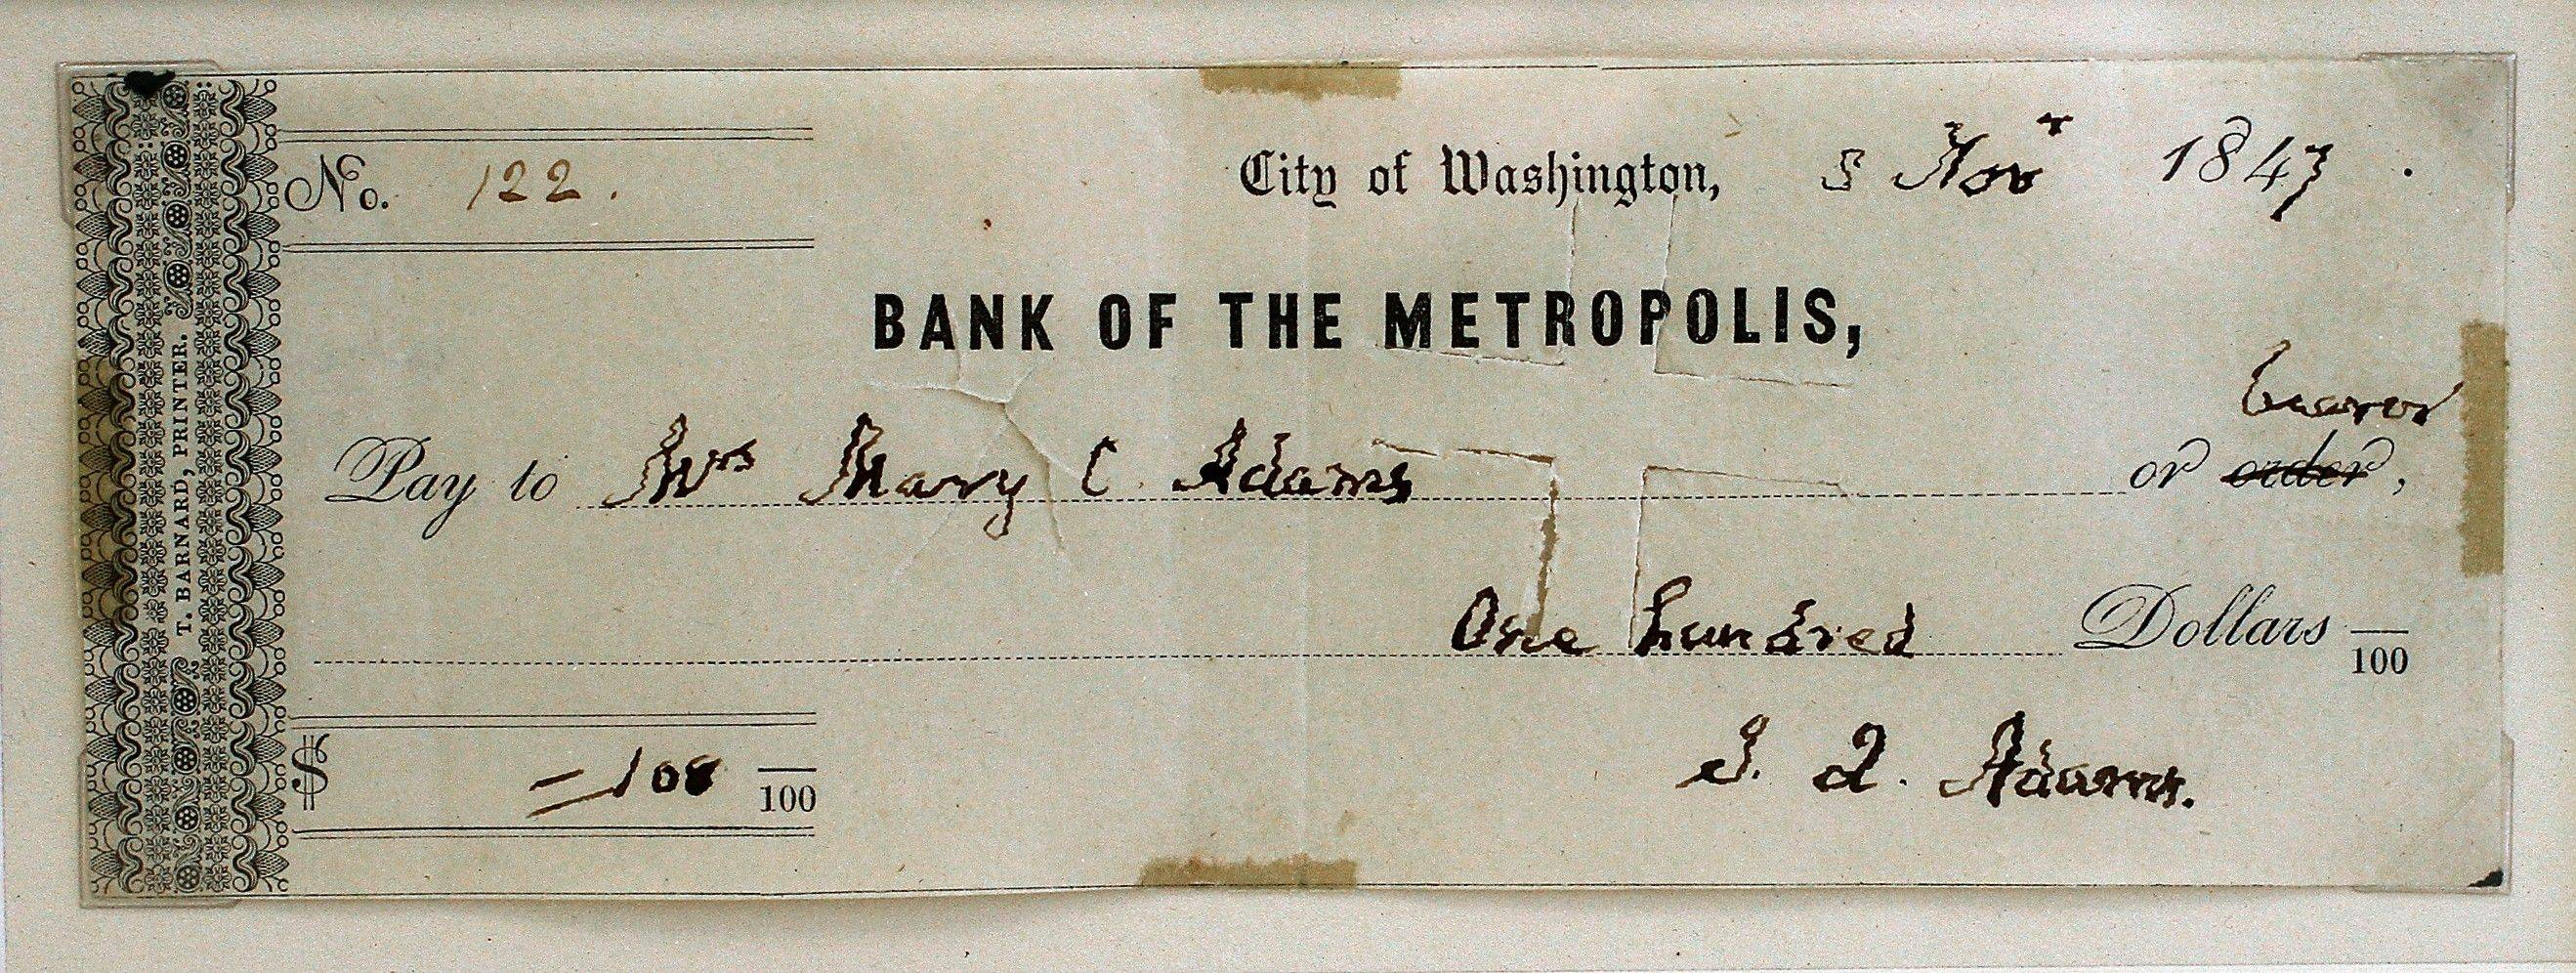 A check signed by John Quincy Adams, president of the United States from 1825-1929, is displayed at the Huntington Bank in Brooklyn, Ohio.